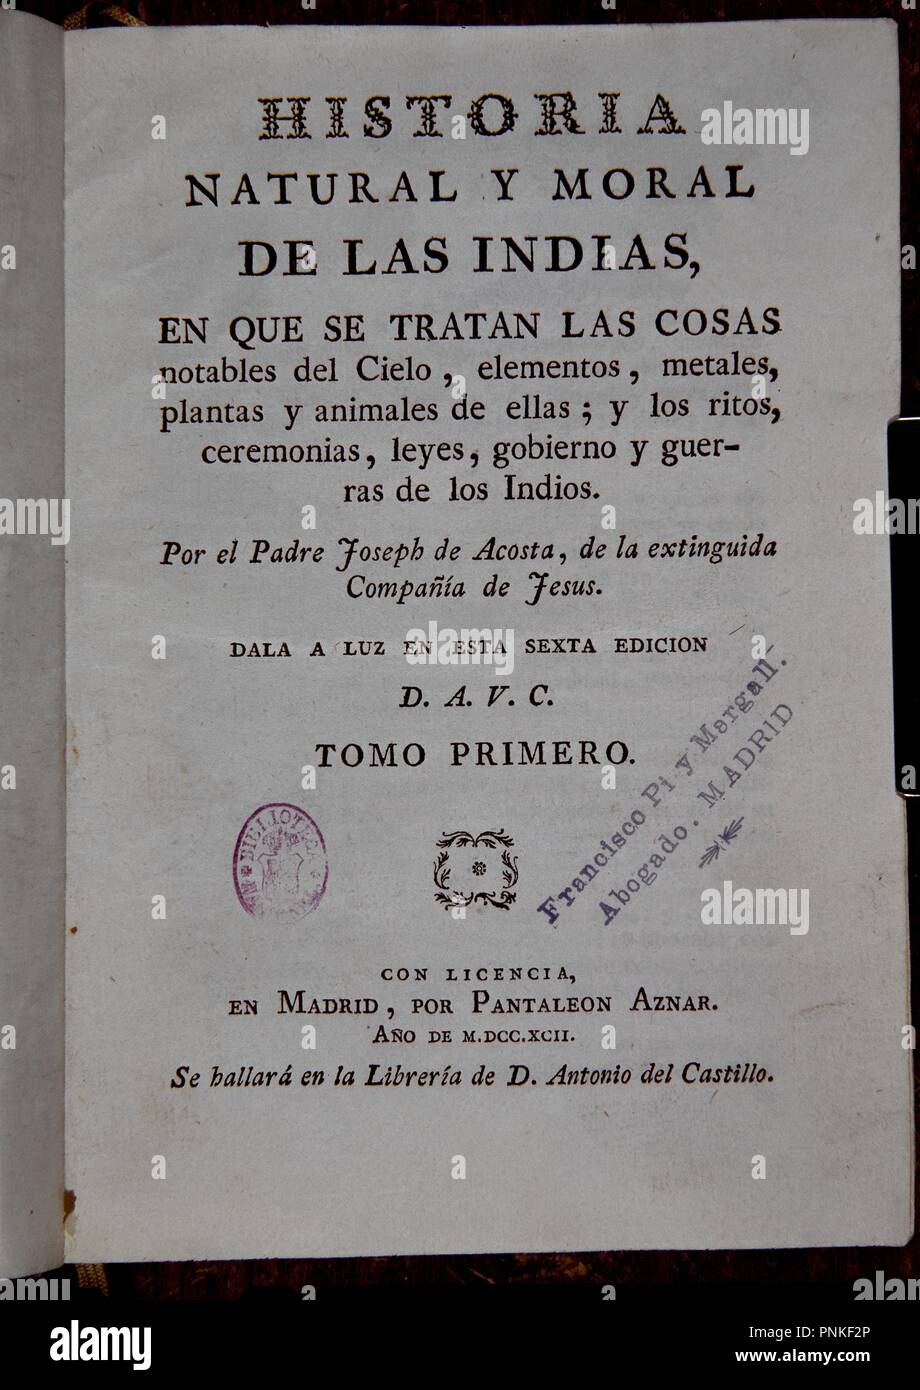 history of the indies